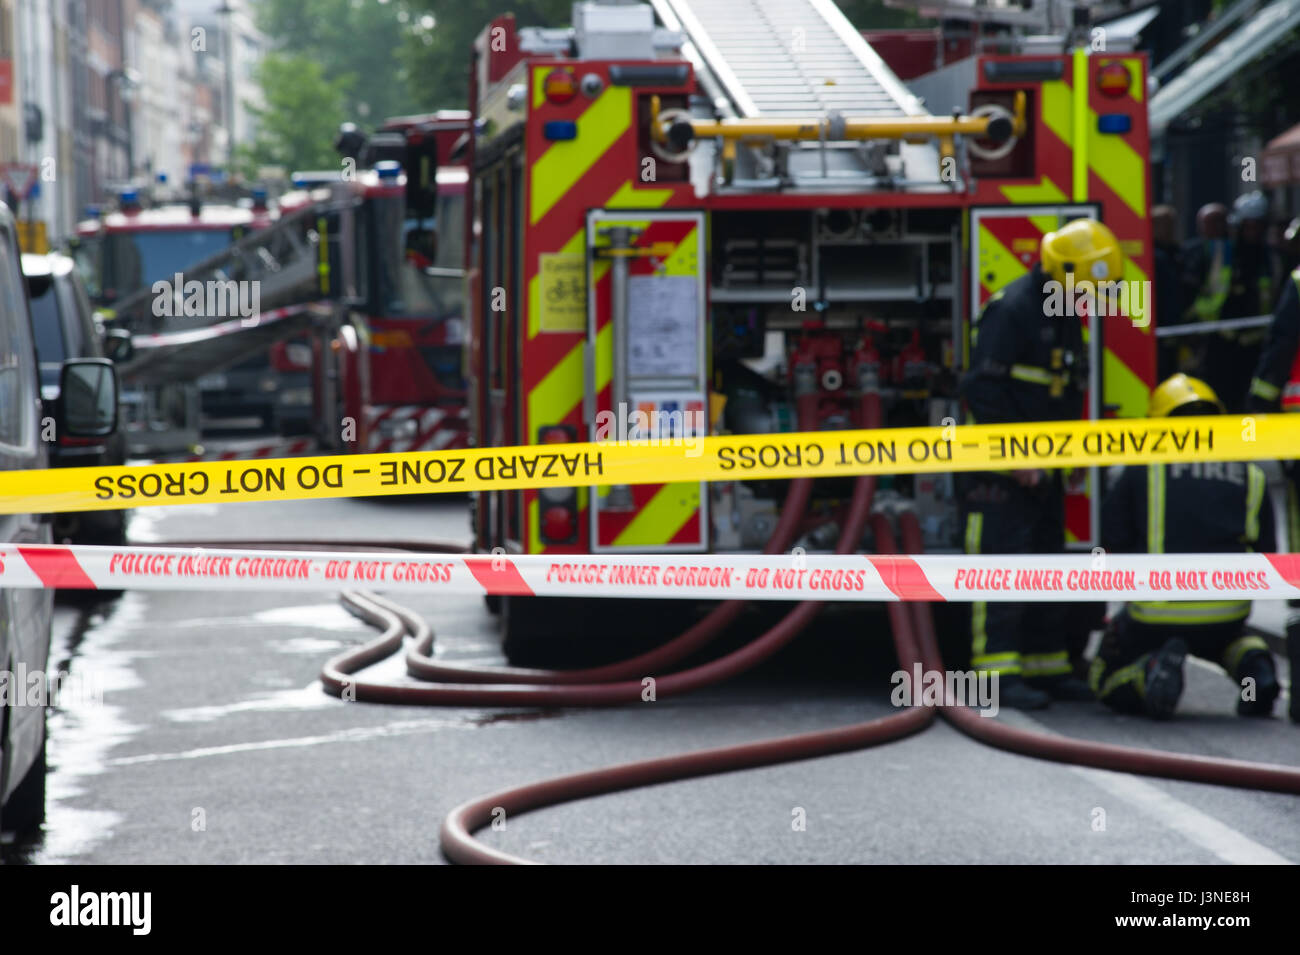 London, UK. 6th May, 2017. Fire on Long Acre near Covent Gardens, London. Several fire engines attended the fire - Stock Image